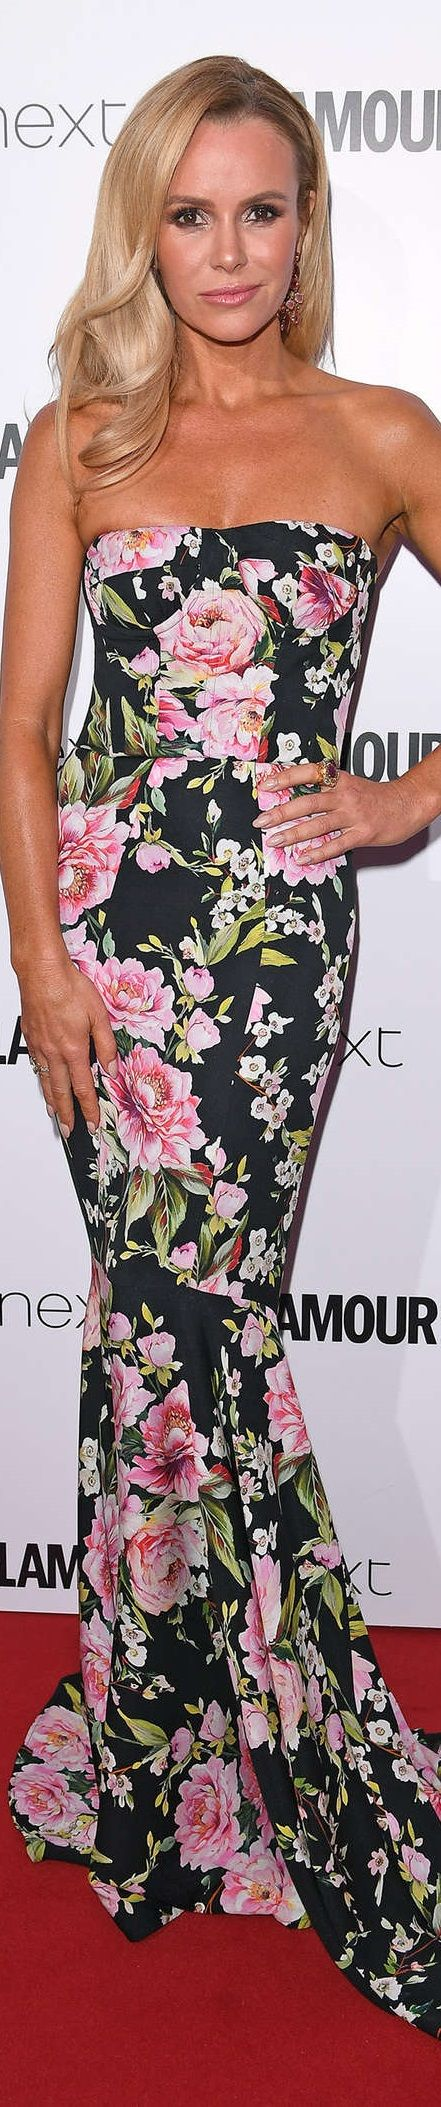 Amanda Holden in D&G